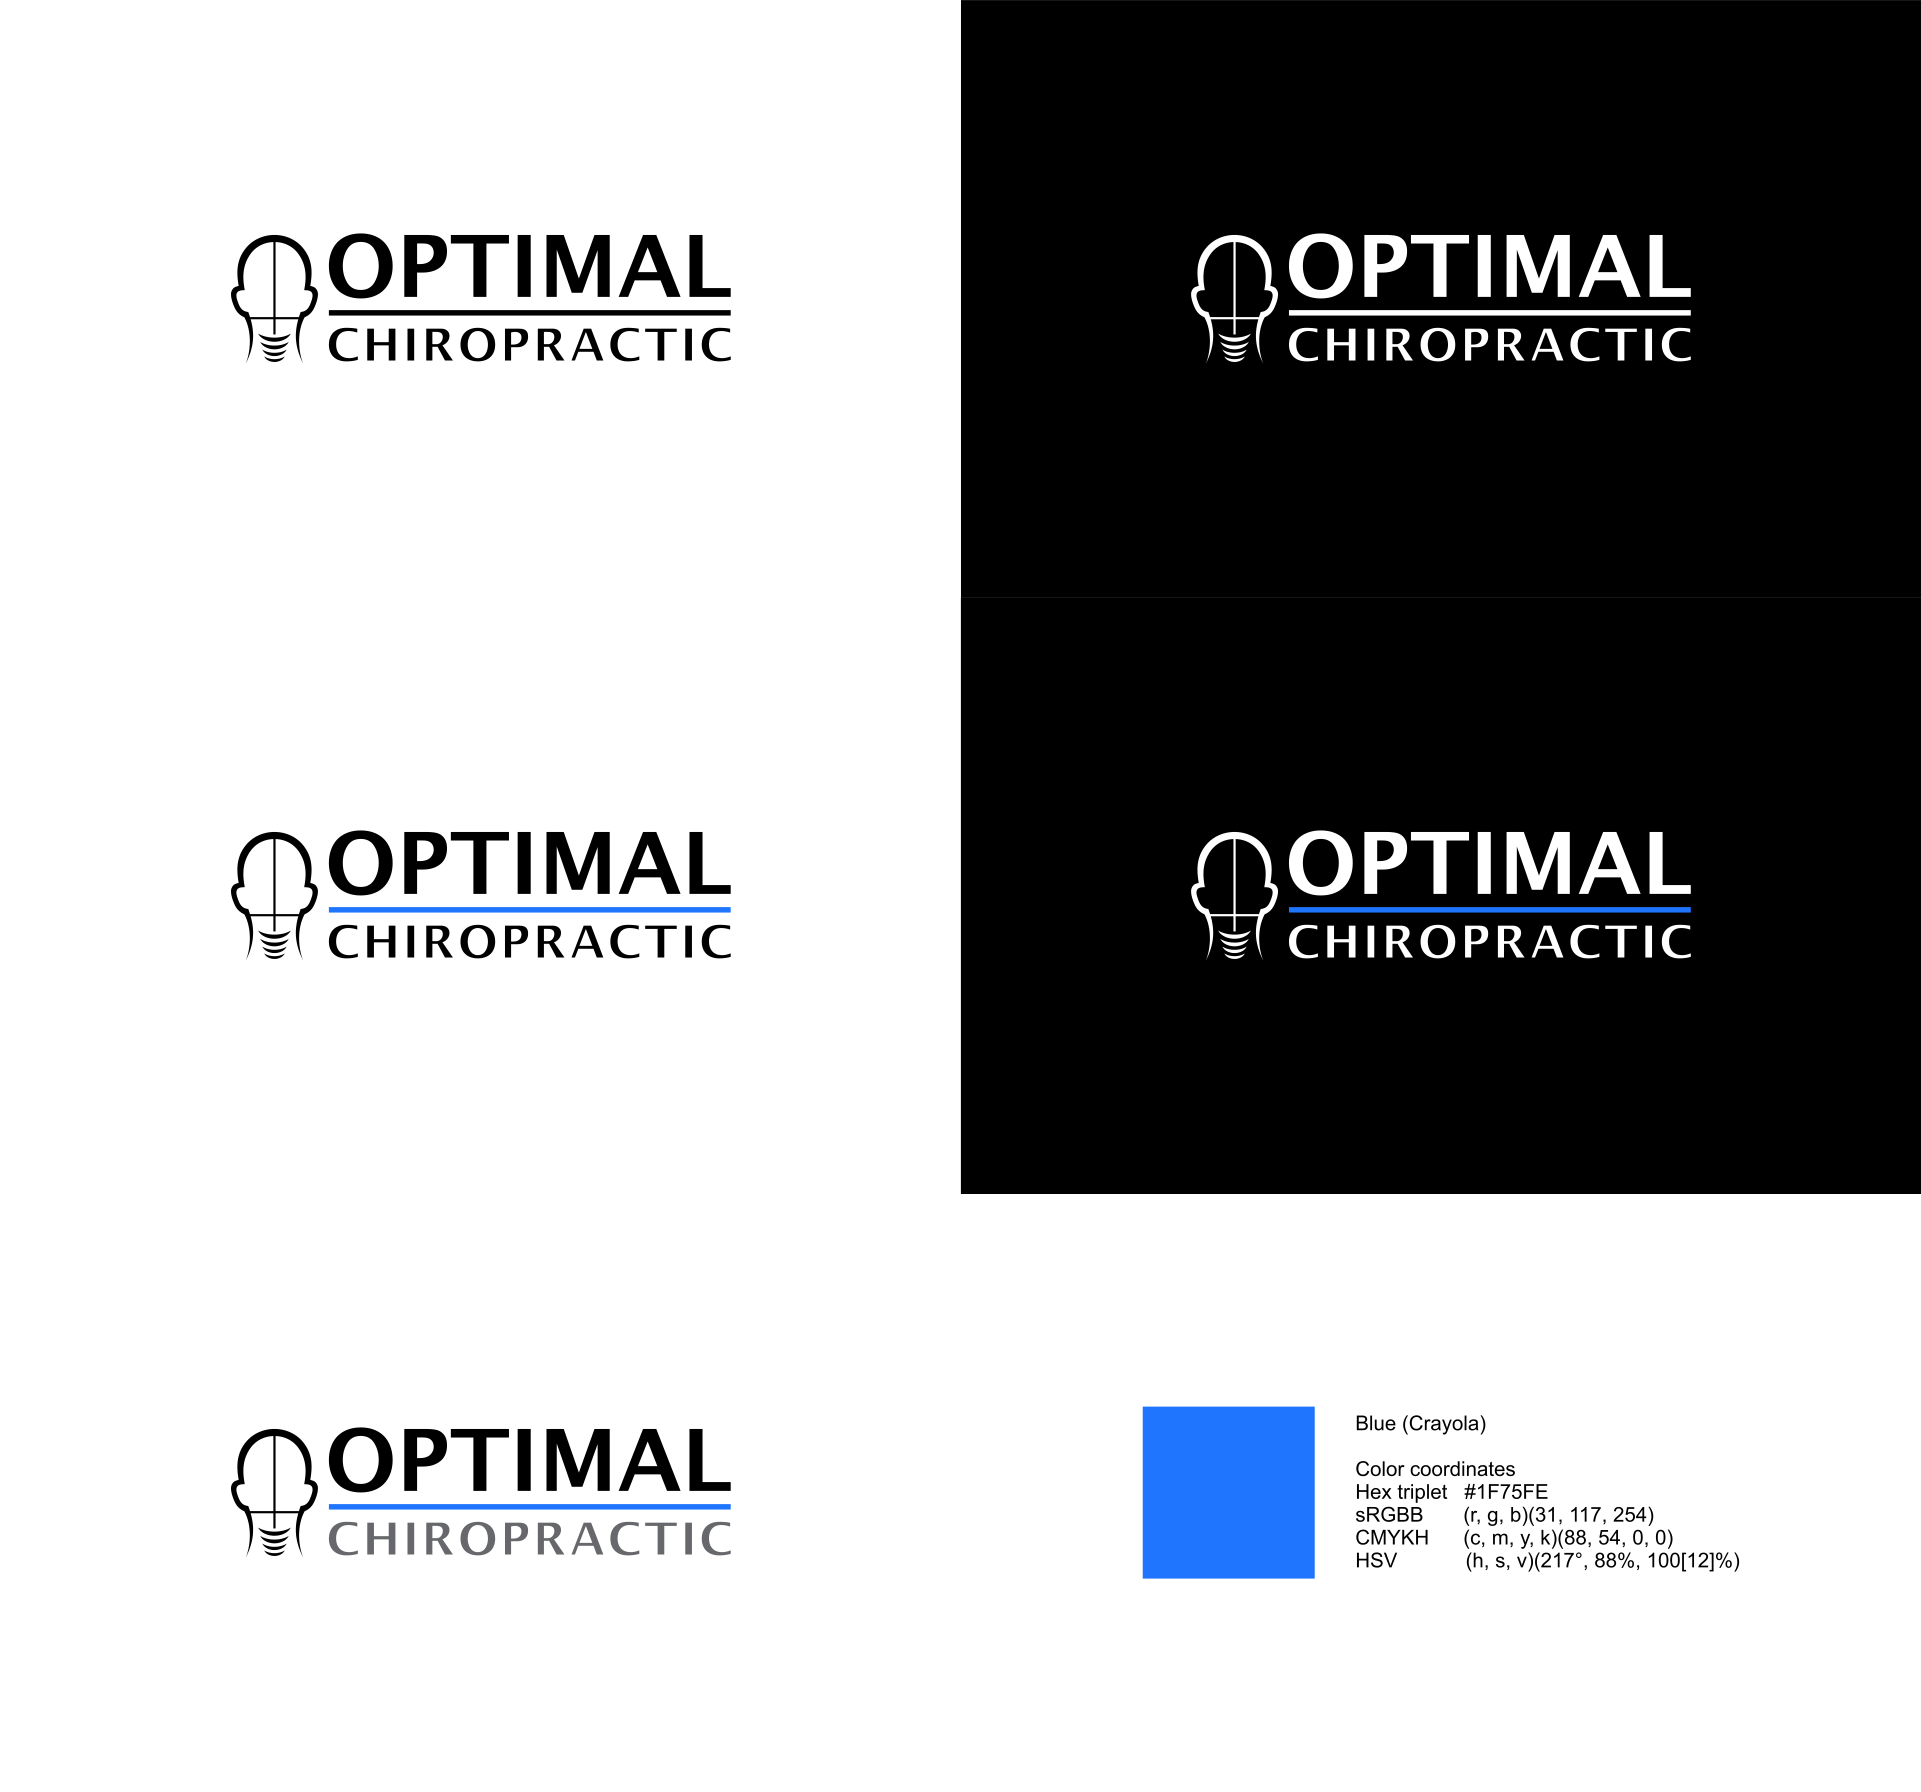 Optimal Spinal Care Needs a Strong but Simple logo.